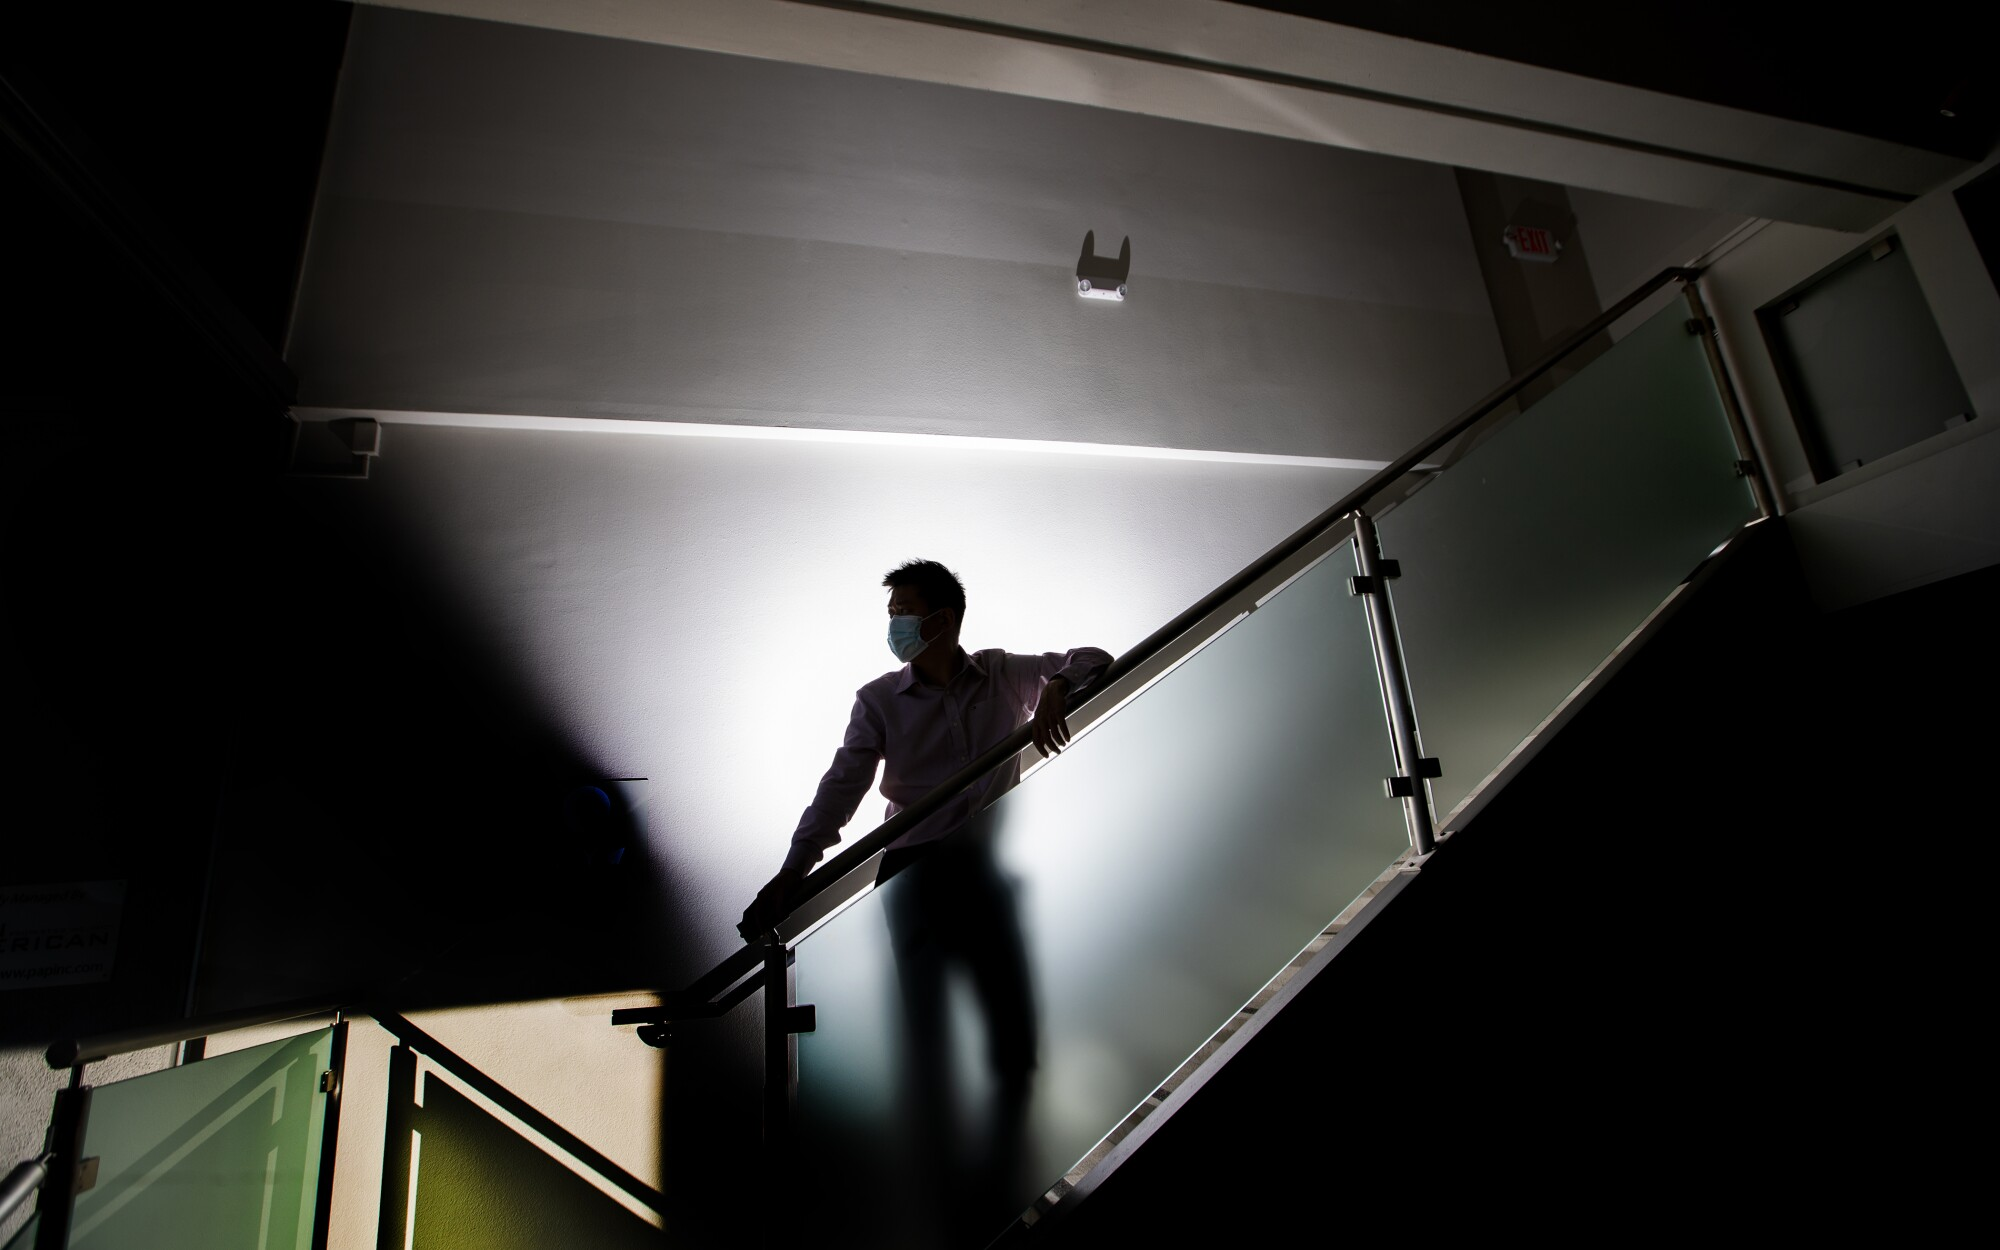 A man in shadows stands on a staircase